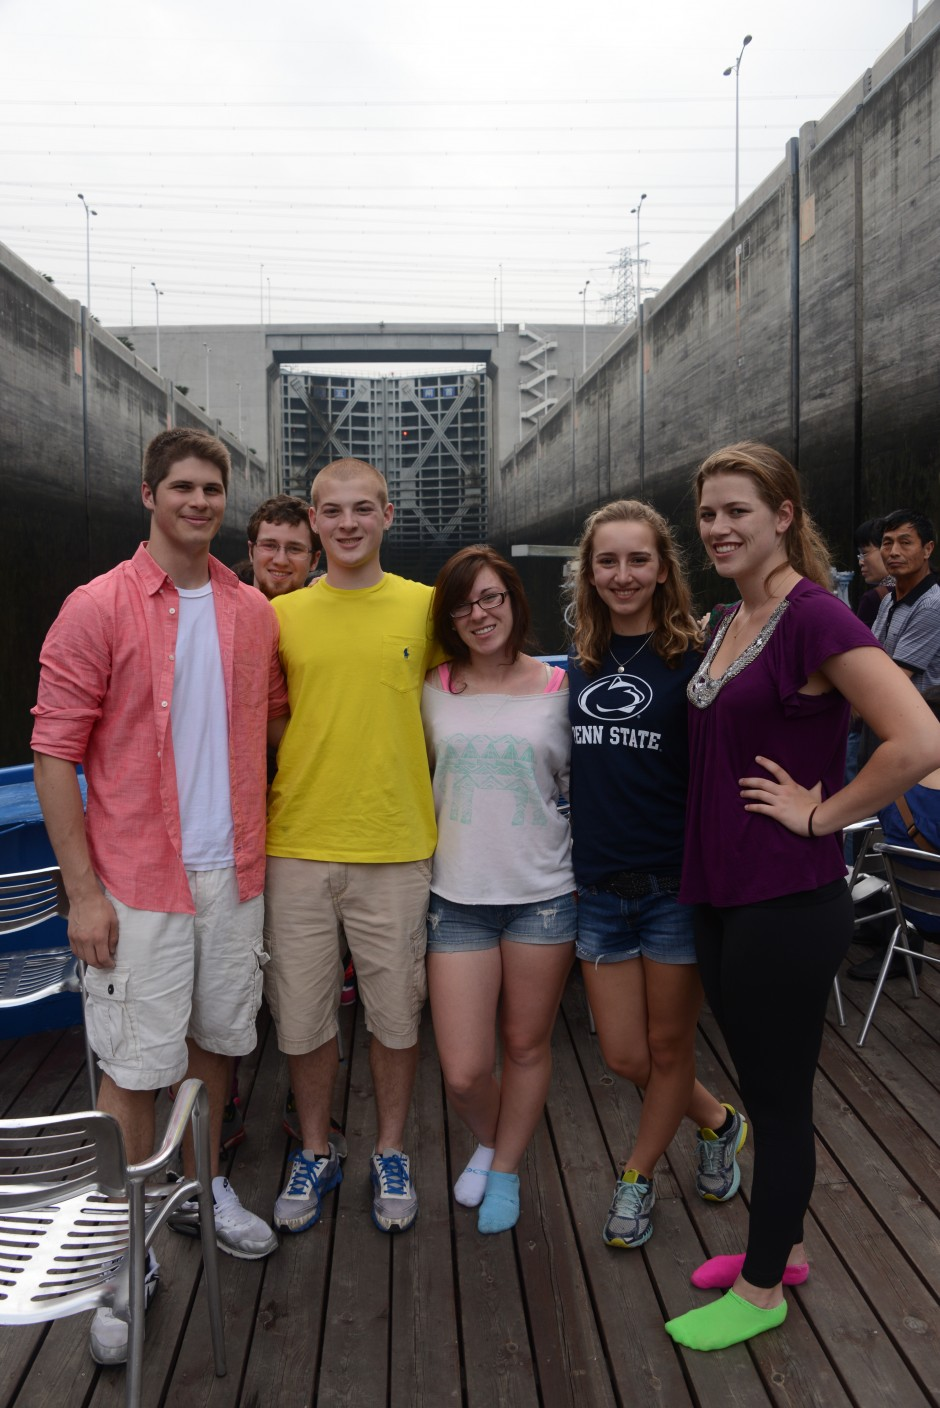 Students pose in front of the first ship lock to the Three Gorges Dam. The dam features a five-level double ship lock — some more than a mile long — designed to raise or lower a ship a total vertical distance of 370 feet. It took the students' cruise ship three hours to traverse all five lock gates. (Photo credit: Curtis Chan)